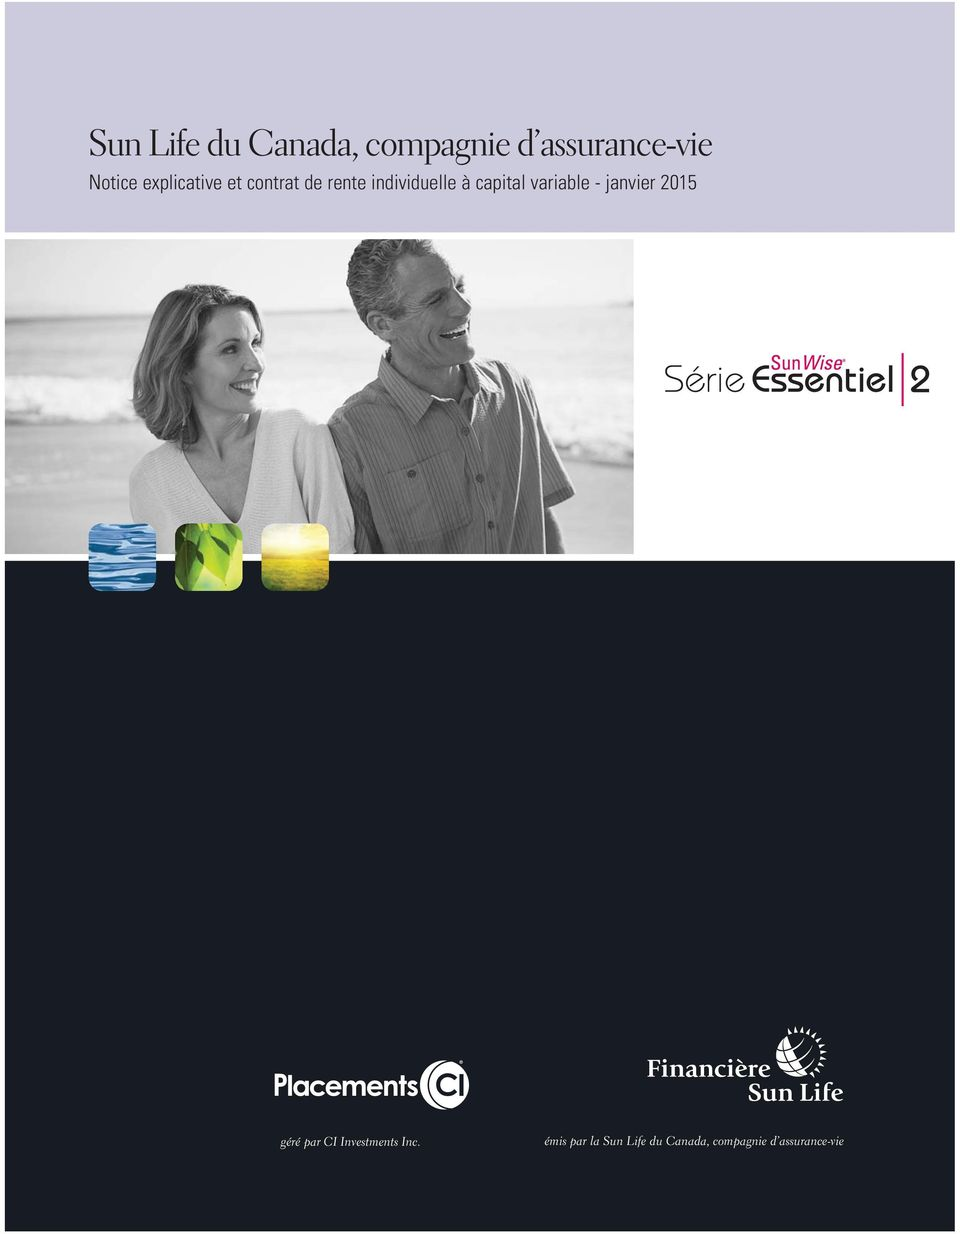 variable - janvier 2015 géré par CI Investments Inc.